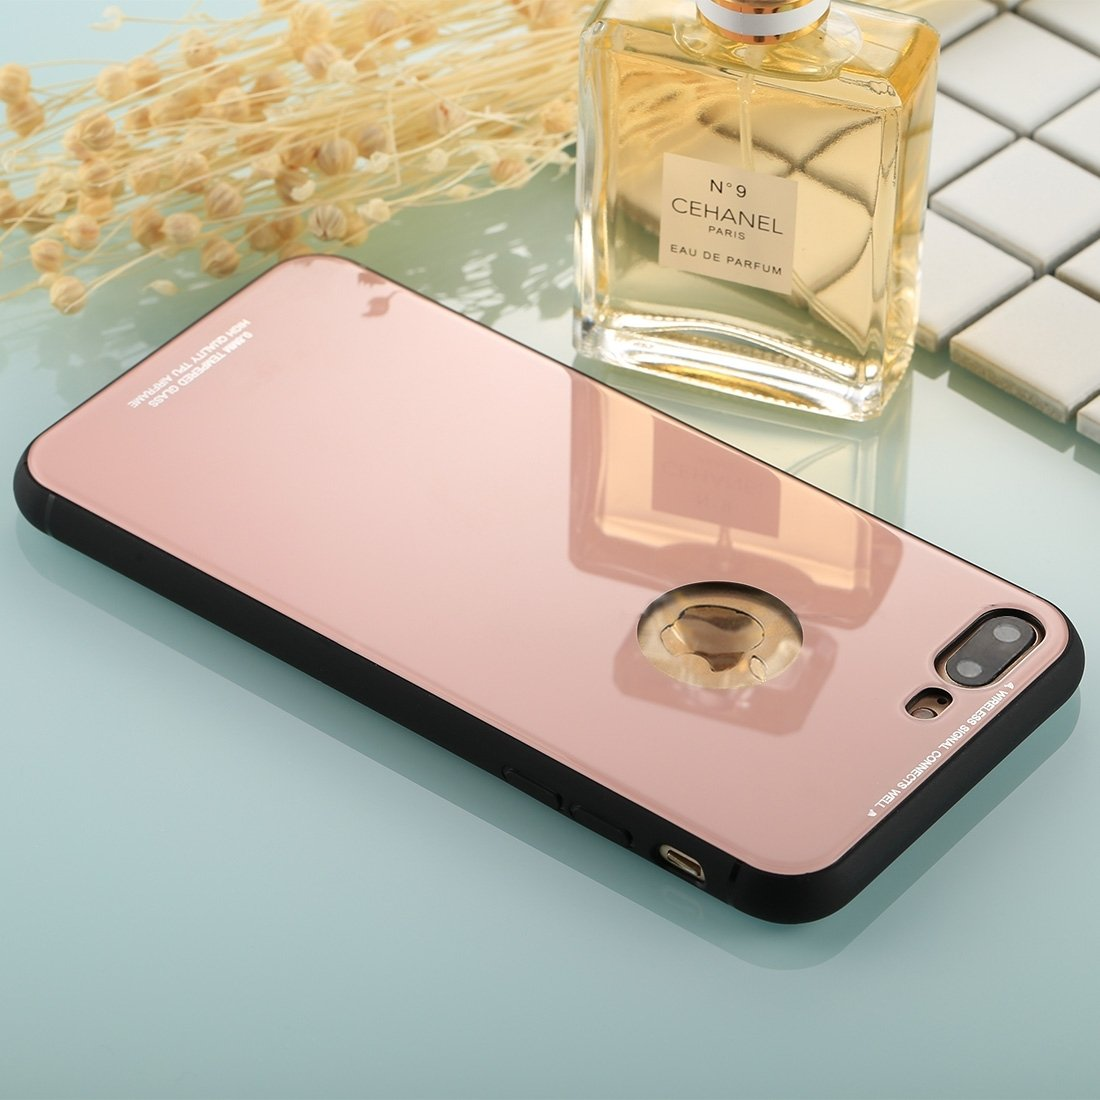 XACQuanyao pour iPhone 8 Plus et 7 Plus 0.8mm Verre Tremp/é Haute Qualit/é TPU Housse de Protection Arri/ère de Protection Couleur : Or Rose